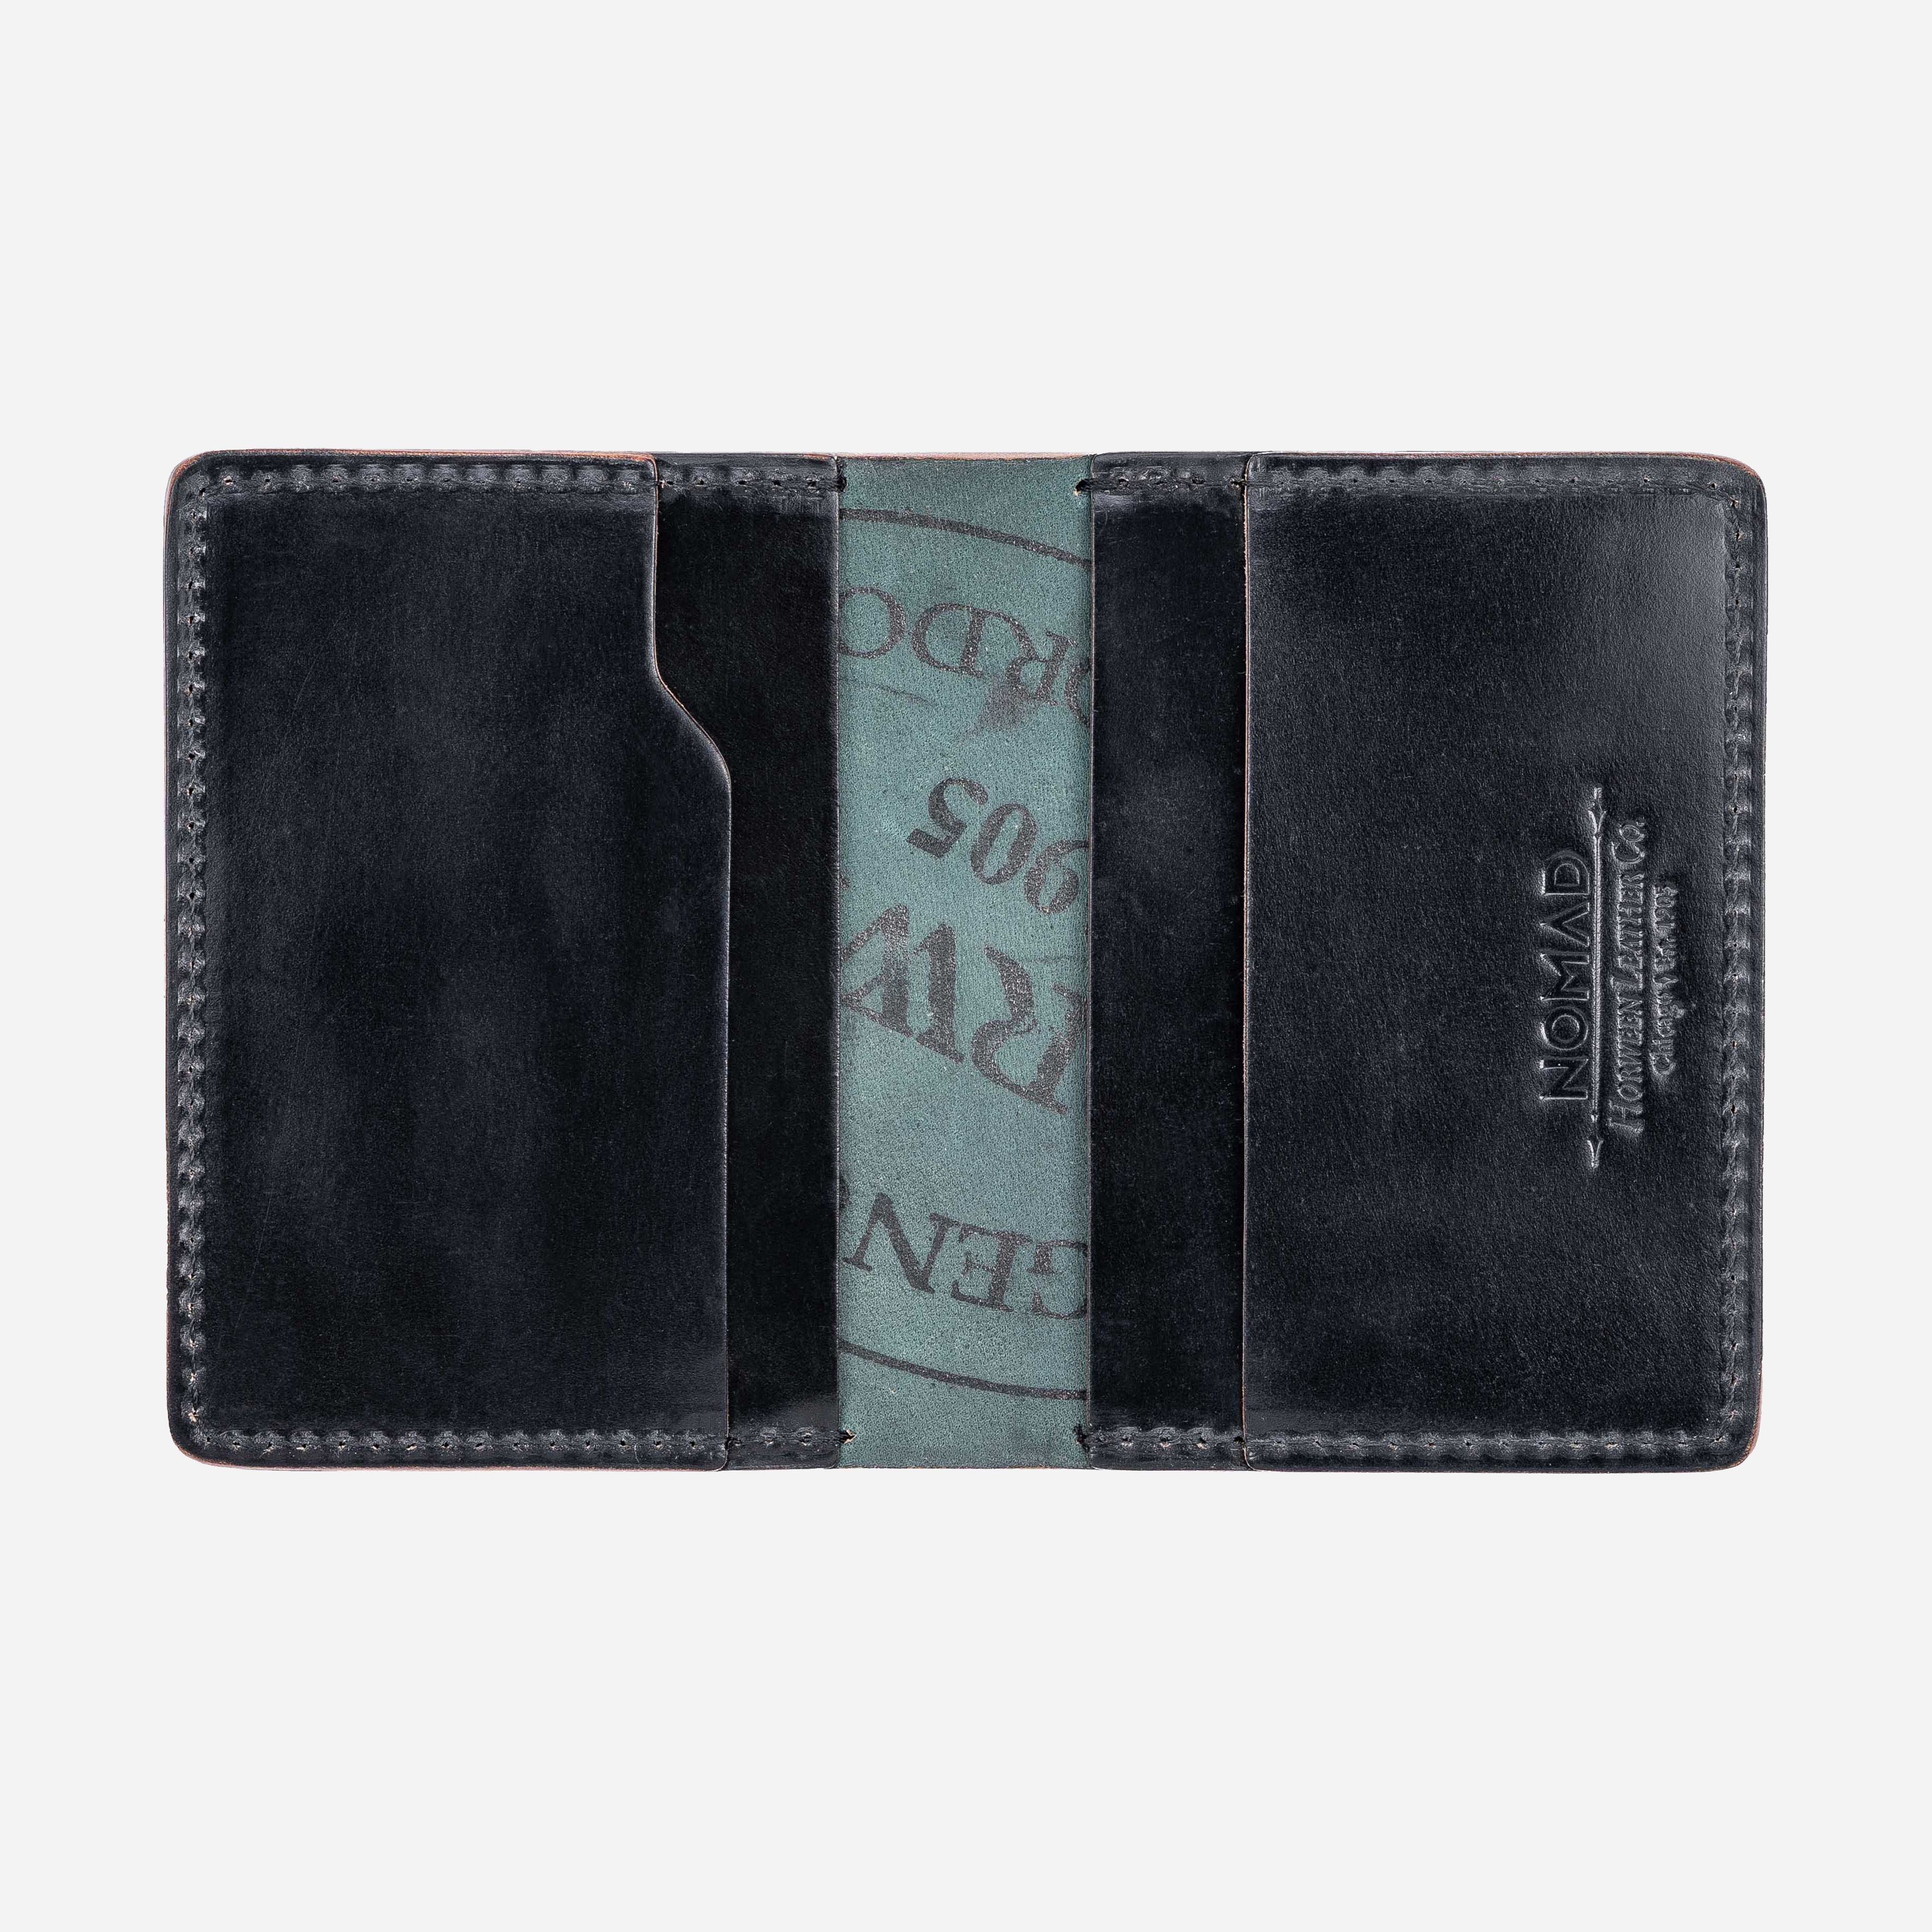 Shell Cordovan Black Leather Wallet